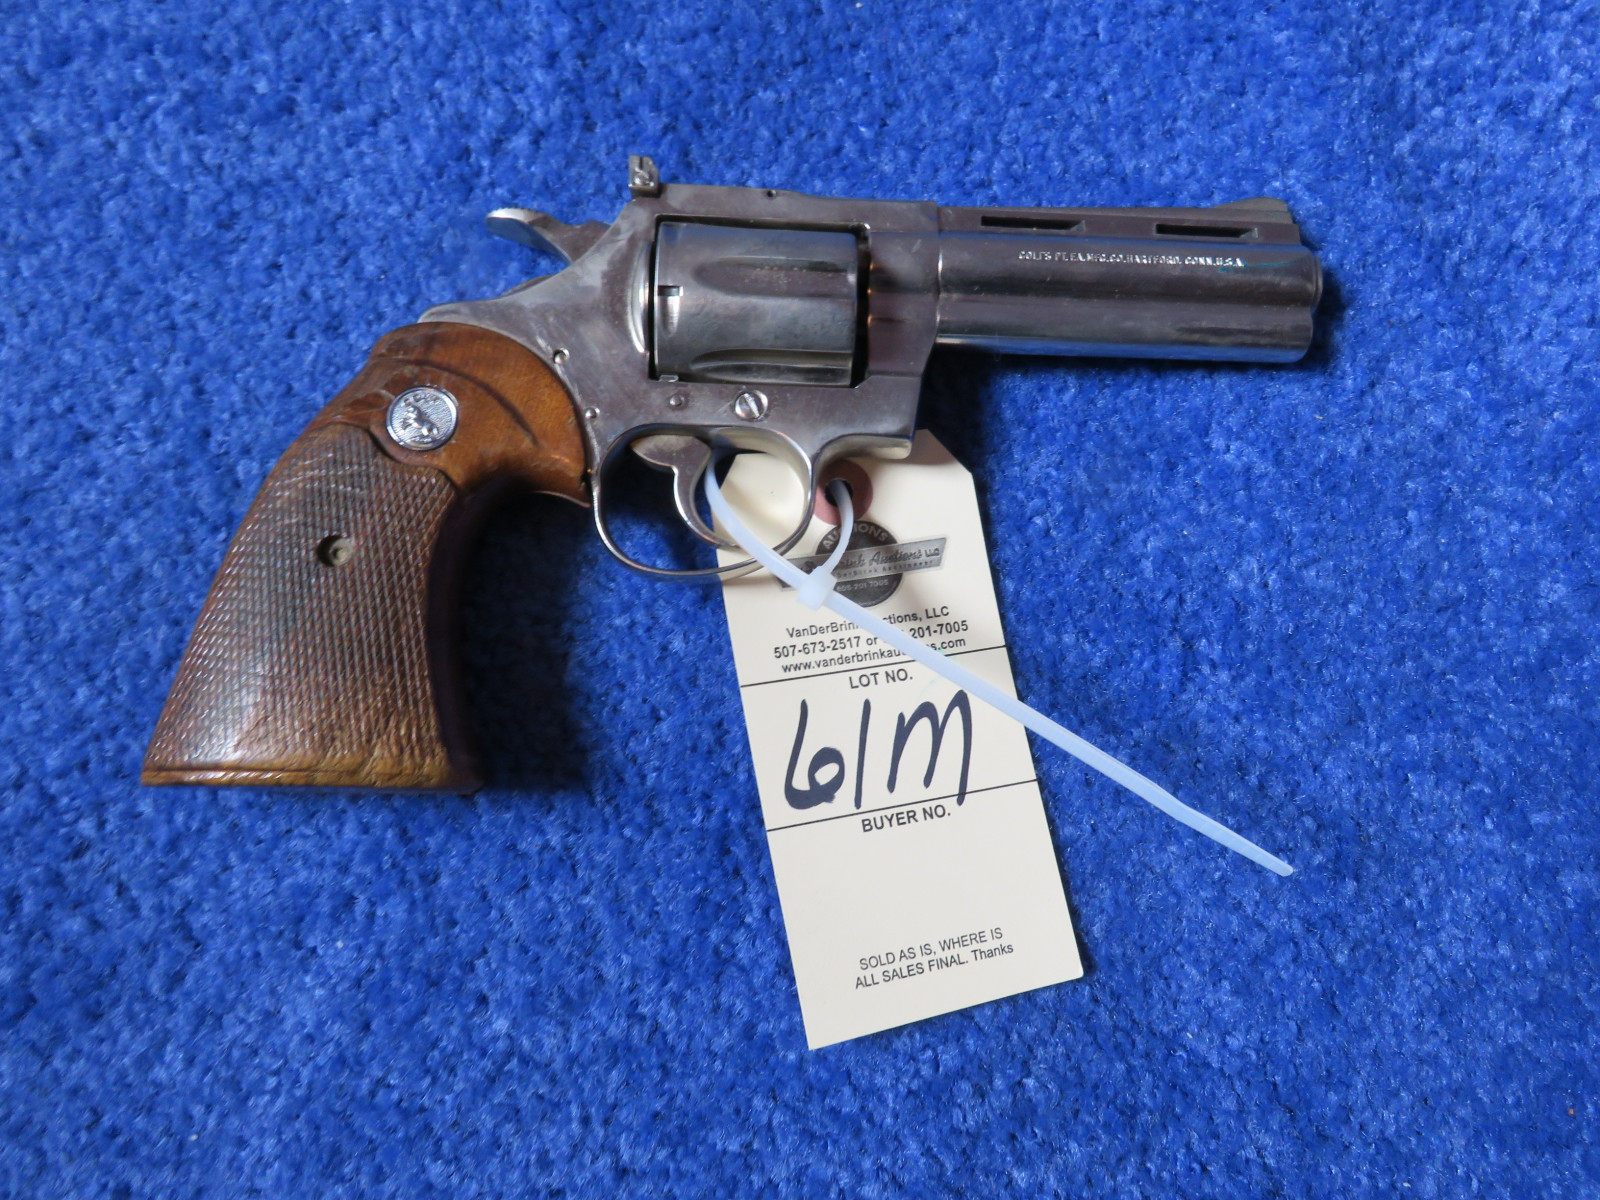 Colt Diamond Back .38 Special CTG Handgun - Image 2